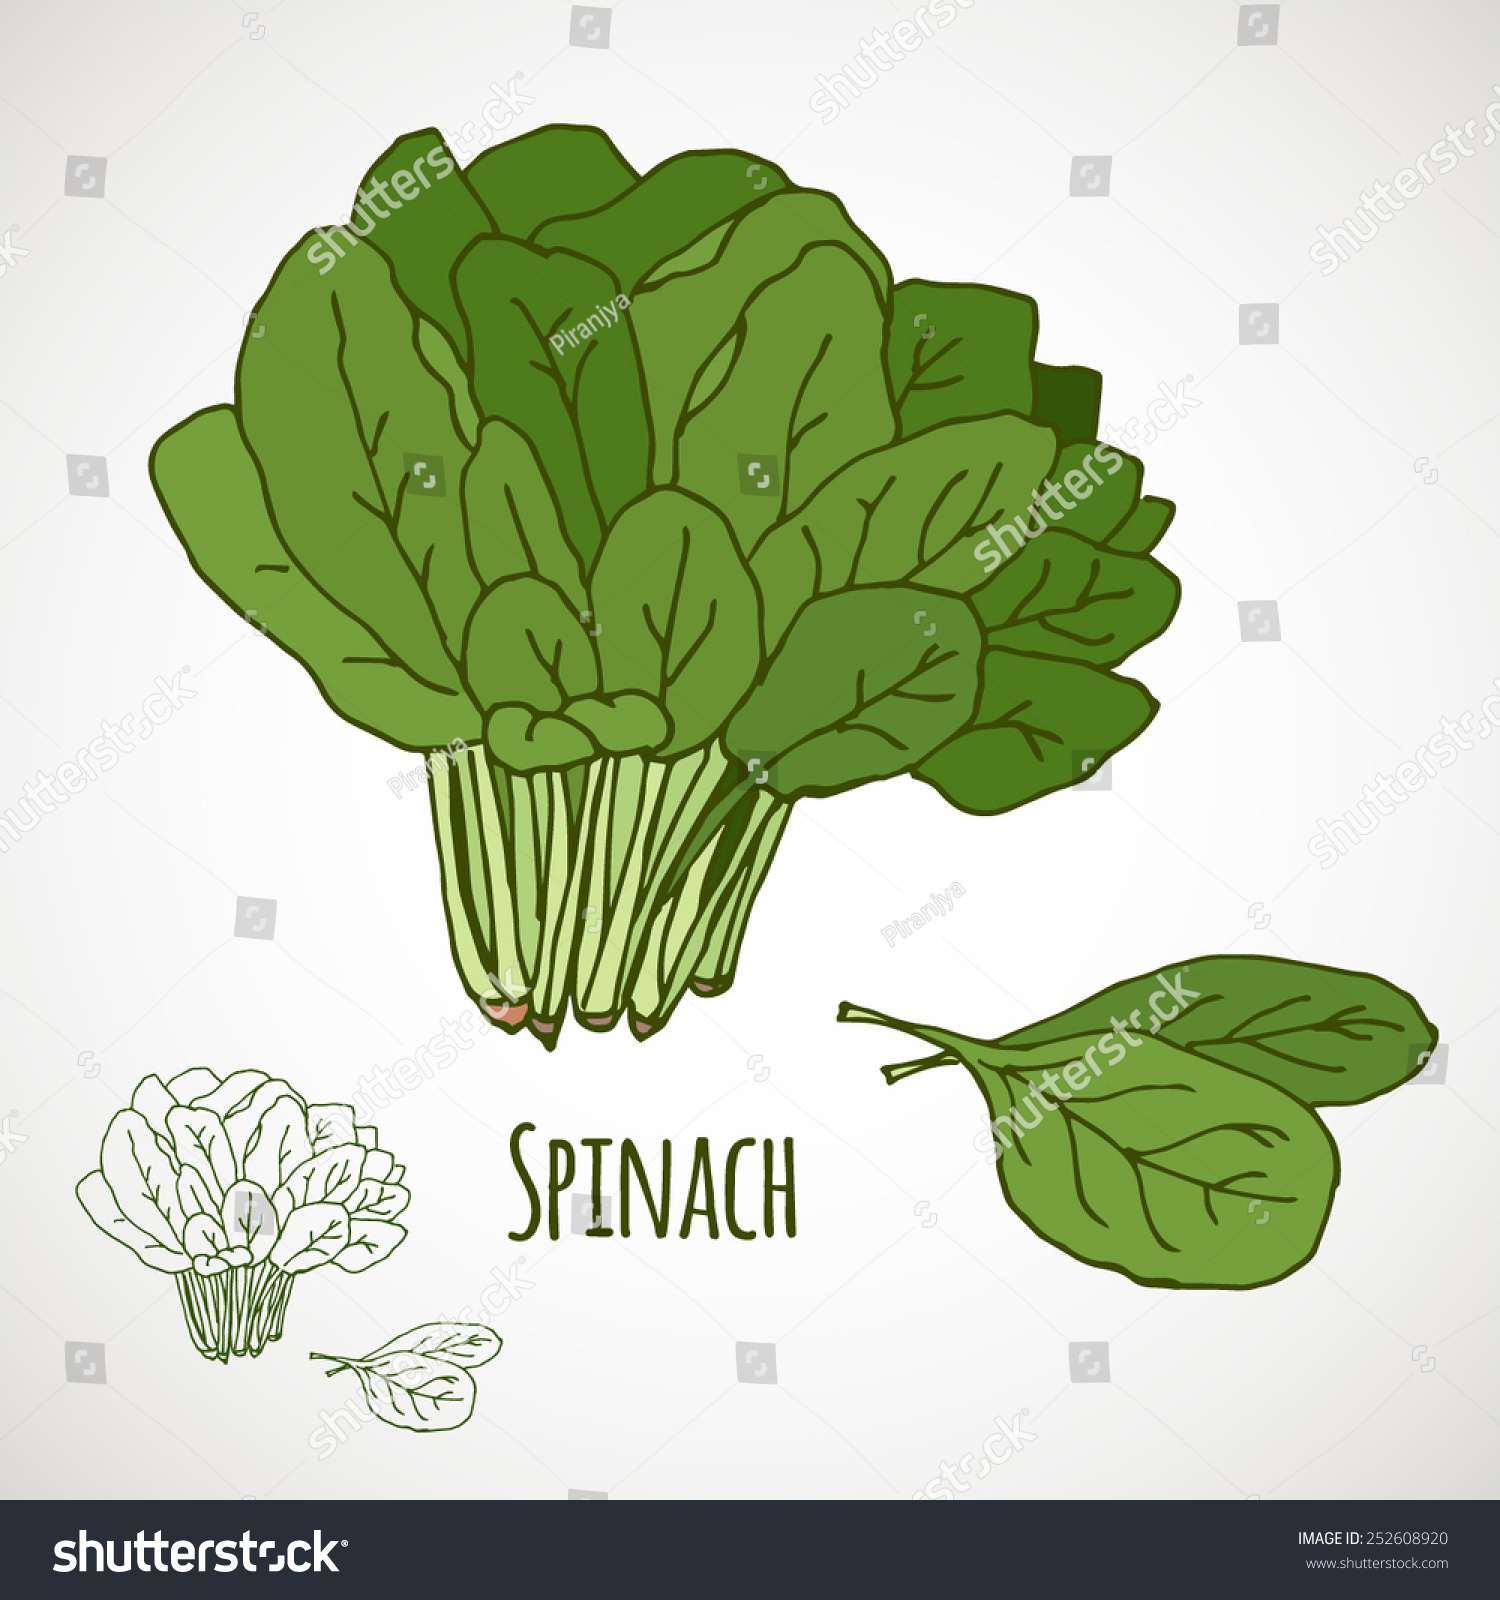 Spinach Green Salad Leaf Vegetable Healthy Stock Vector 252608920 ...